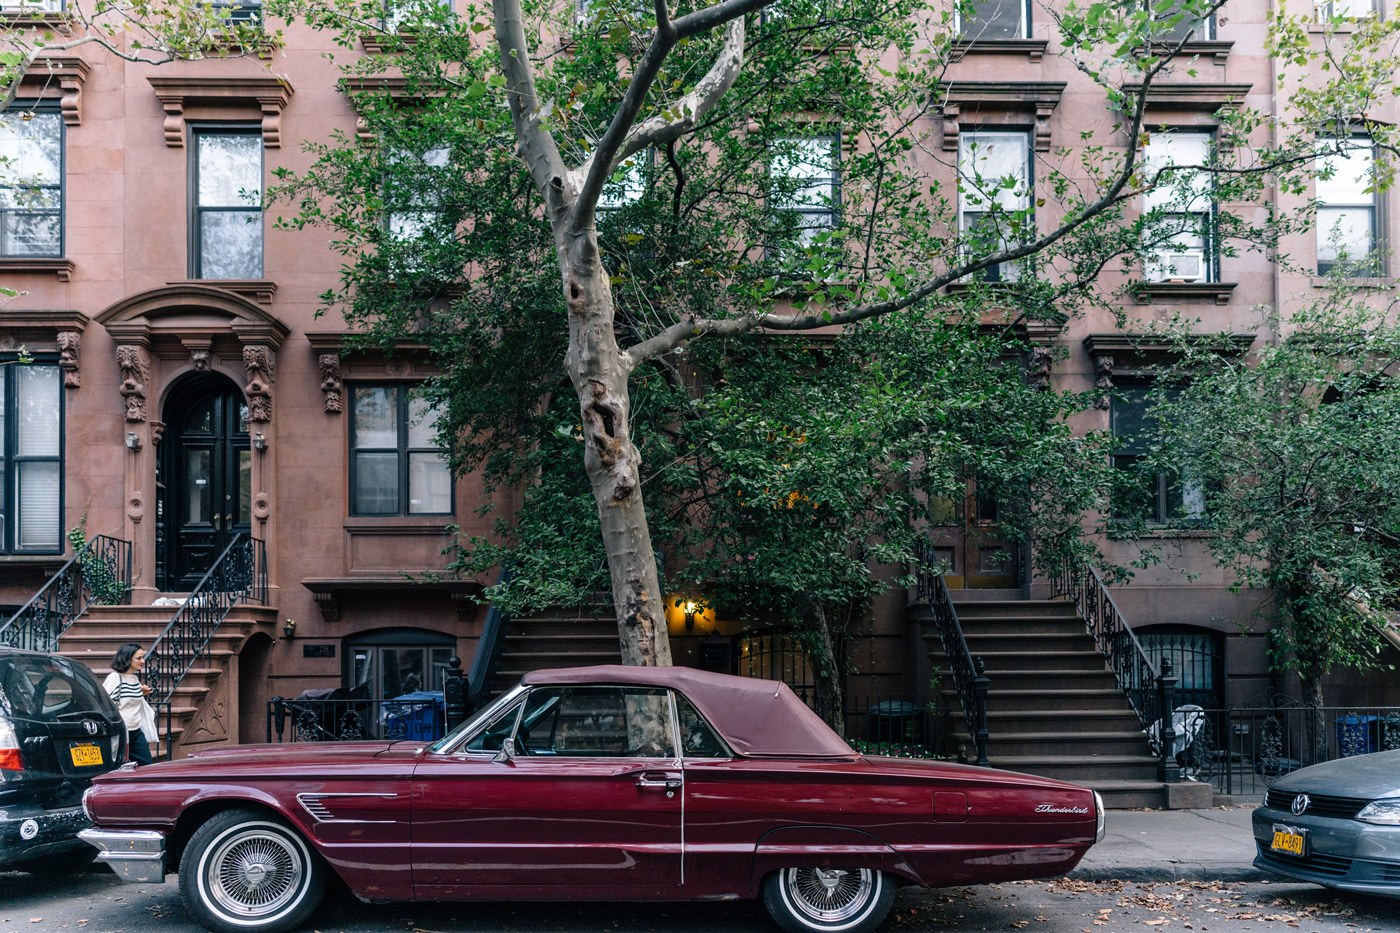 Thunderbird convertible parked outside a Cobble Hill townhouse